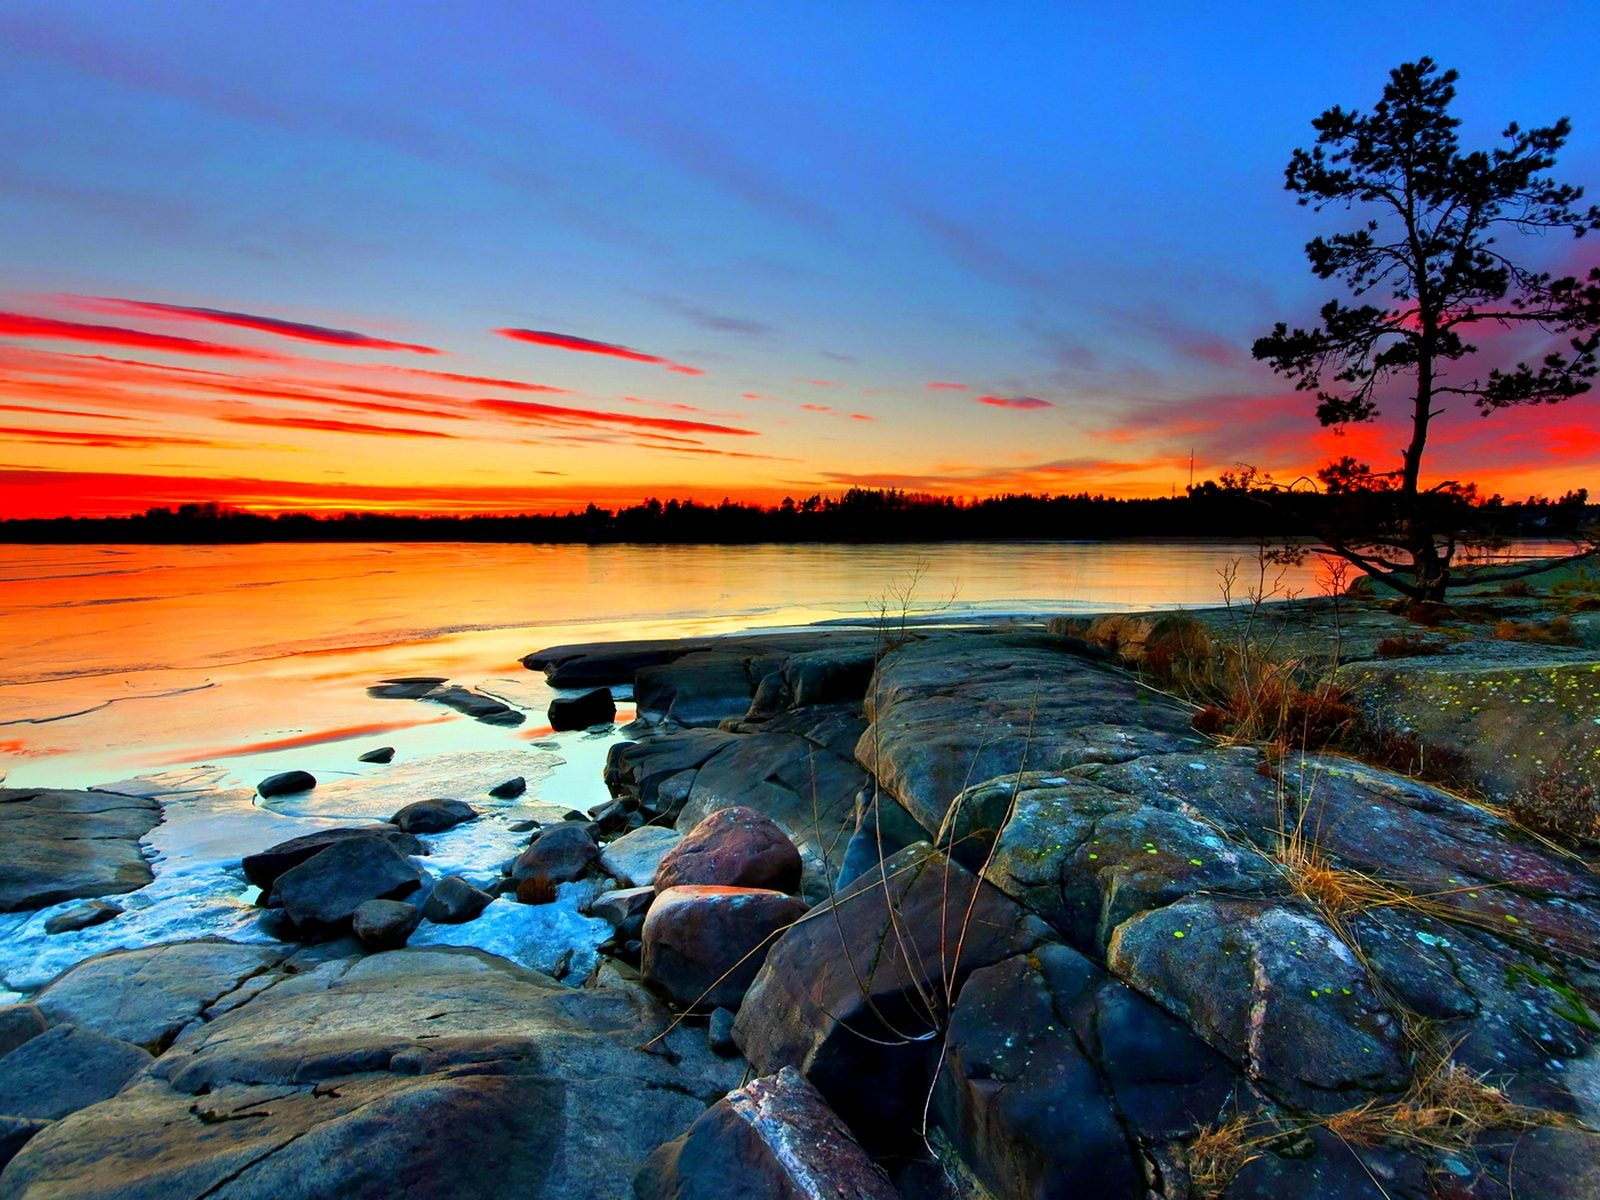 Cars 2 Wallpaper Free Download Hd Sunset Rocky Shores The Sky With Red Cloud Sea Horizon